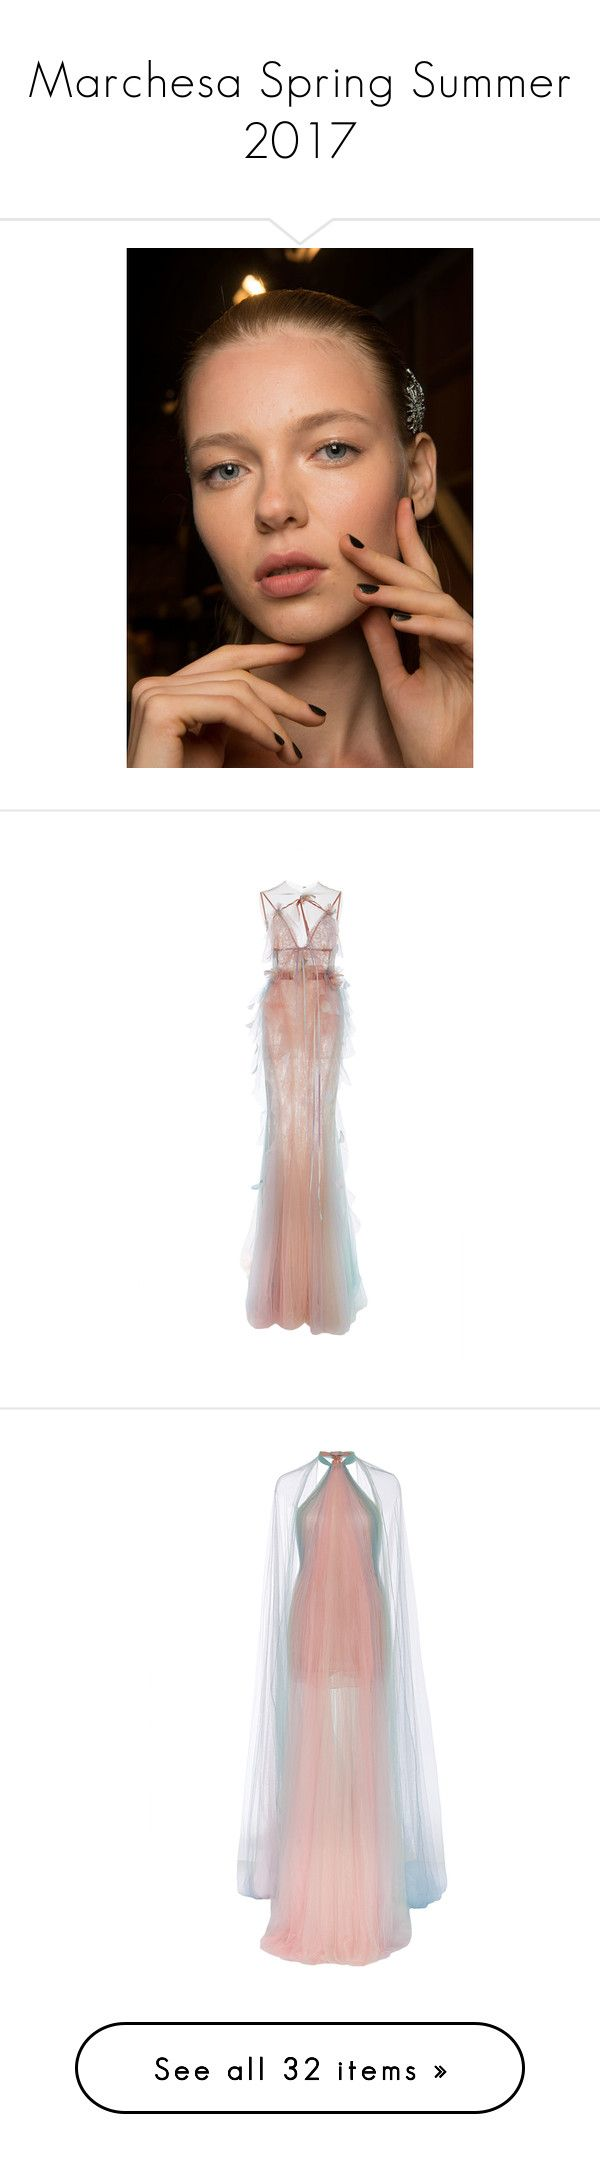 """""""Marchesa Spring Summer 2017"""" by enam ❤ liked on Polyvore featuring dresses, gowns, nude, white satin dress, white satin gown, halter dress, marchesa gowns, white ball gowns, marchesa and pink"""